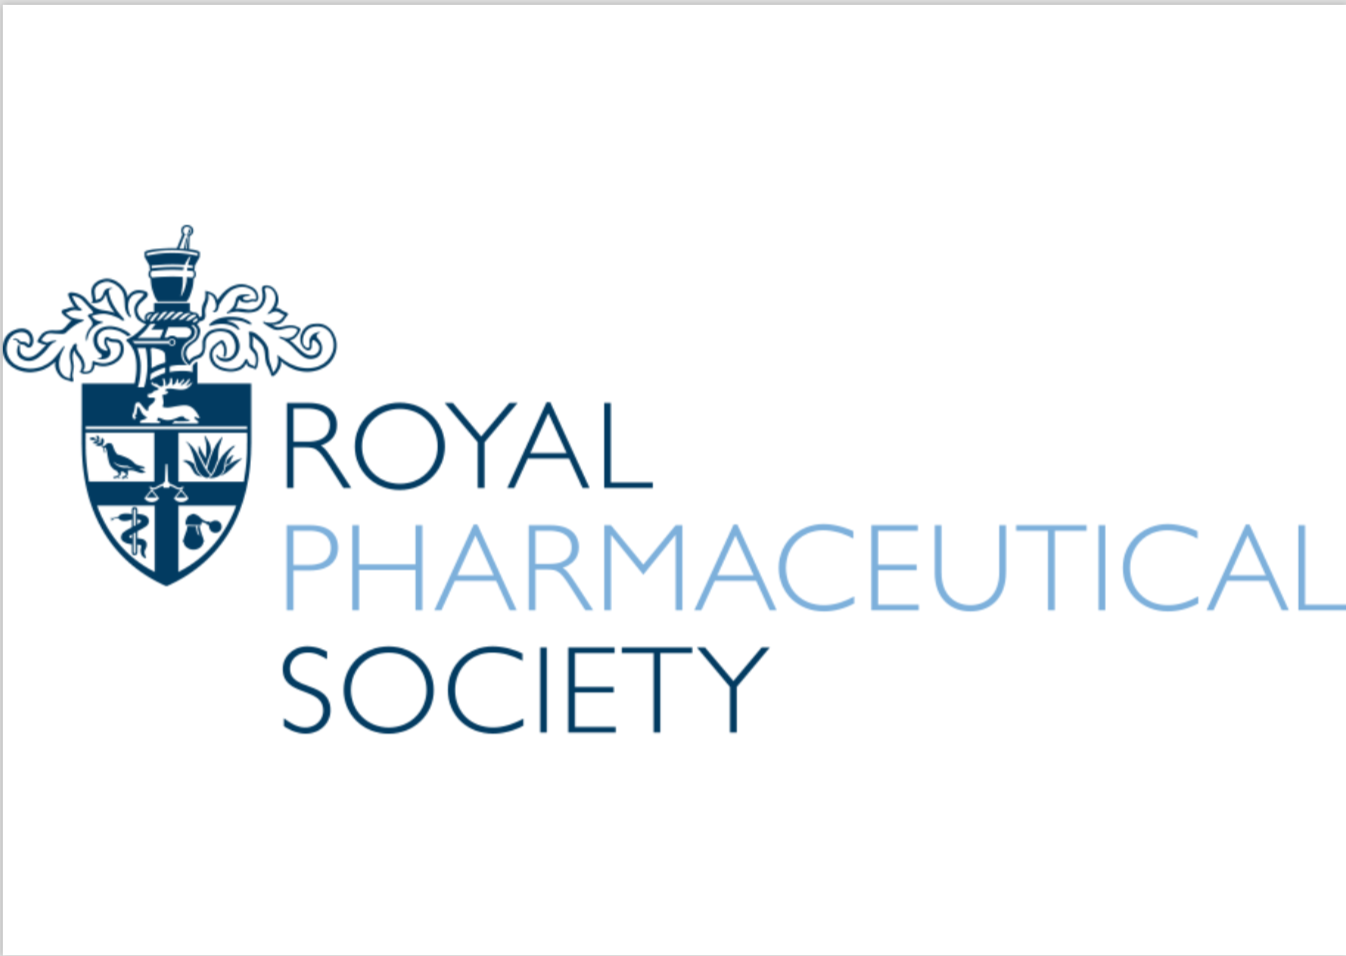 COVID-19: Royal Pharmaceutical Society (RPS) useful updates, resources & information